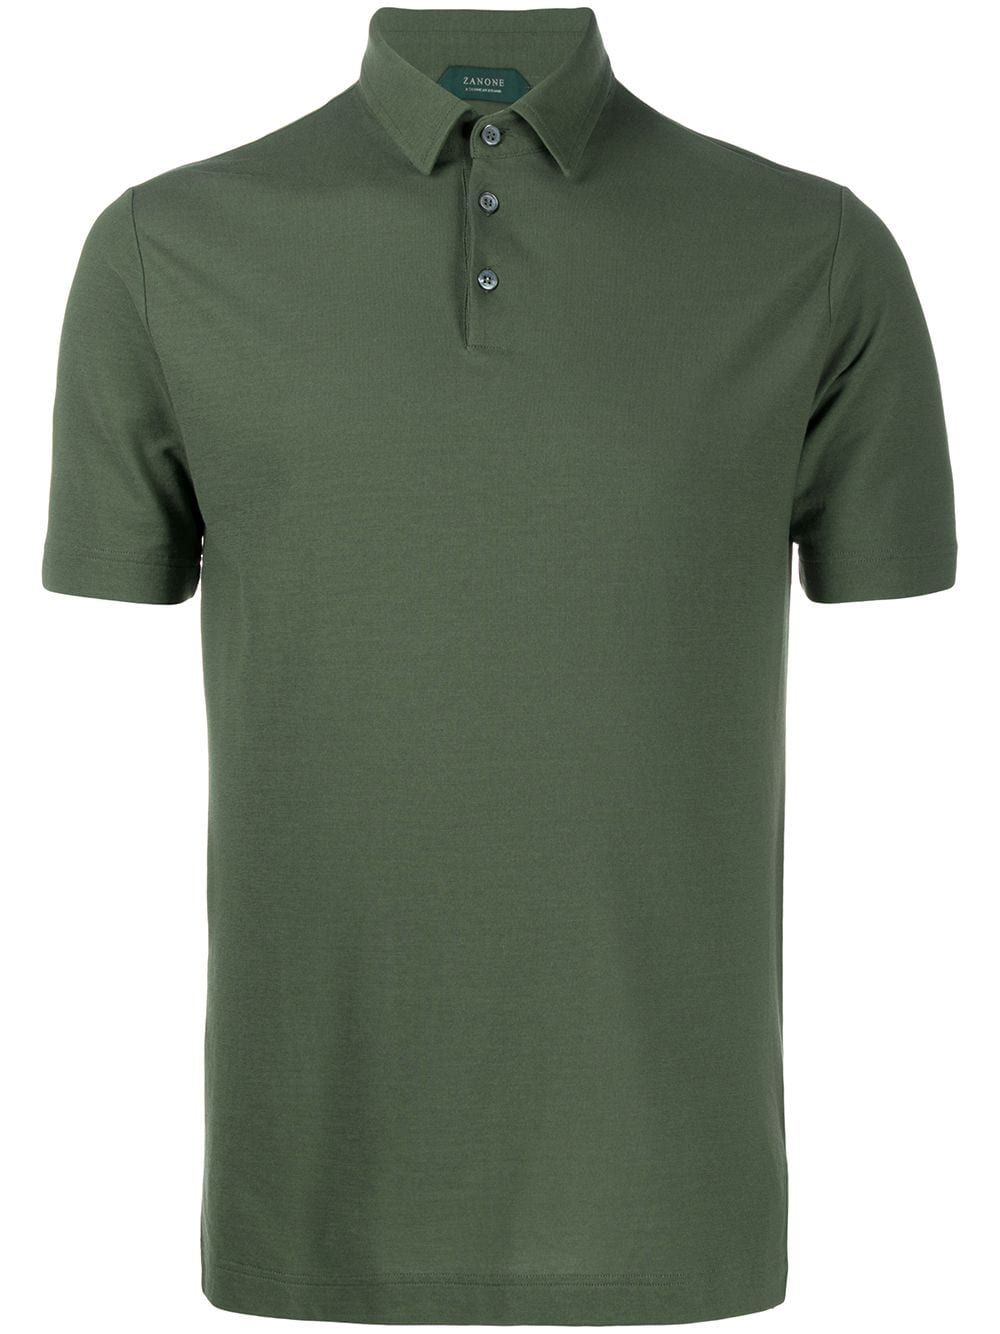 Picture of Zanone | Classic Polo Shirt